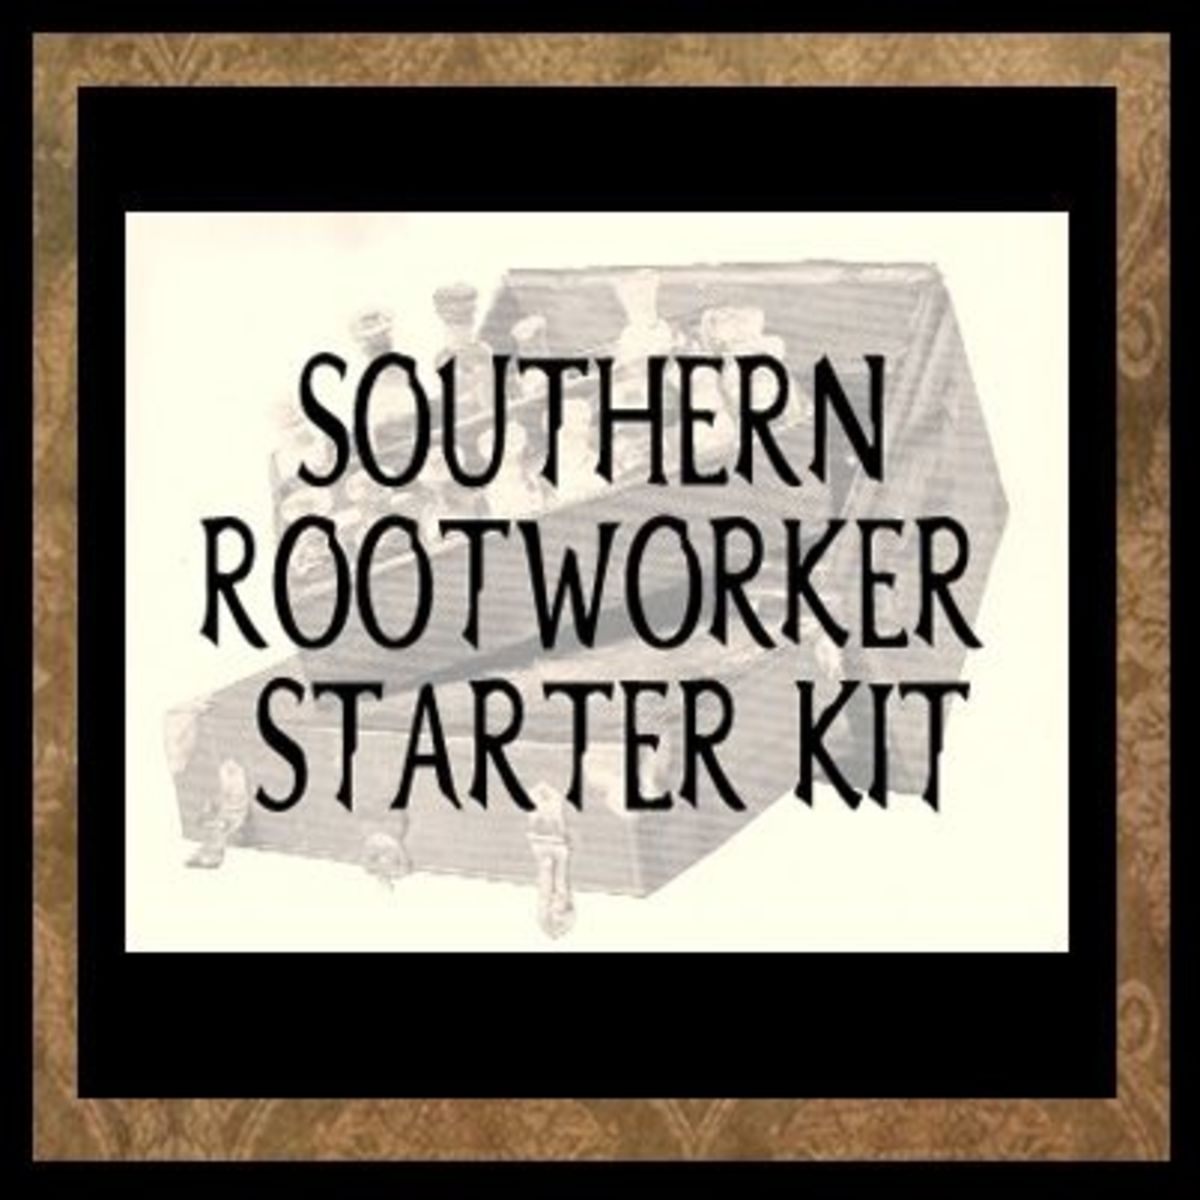 Southern Rootworker Starter Kit